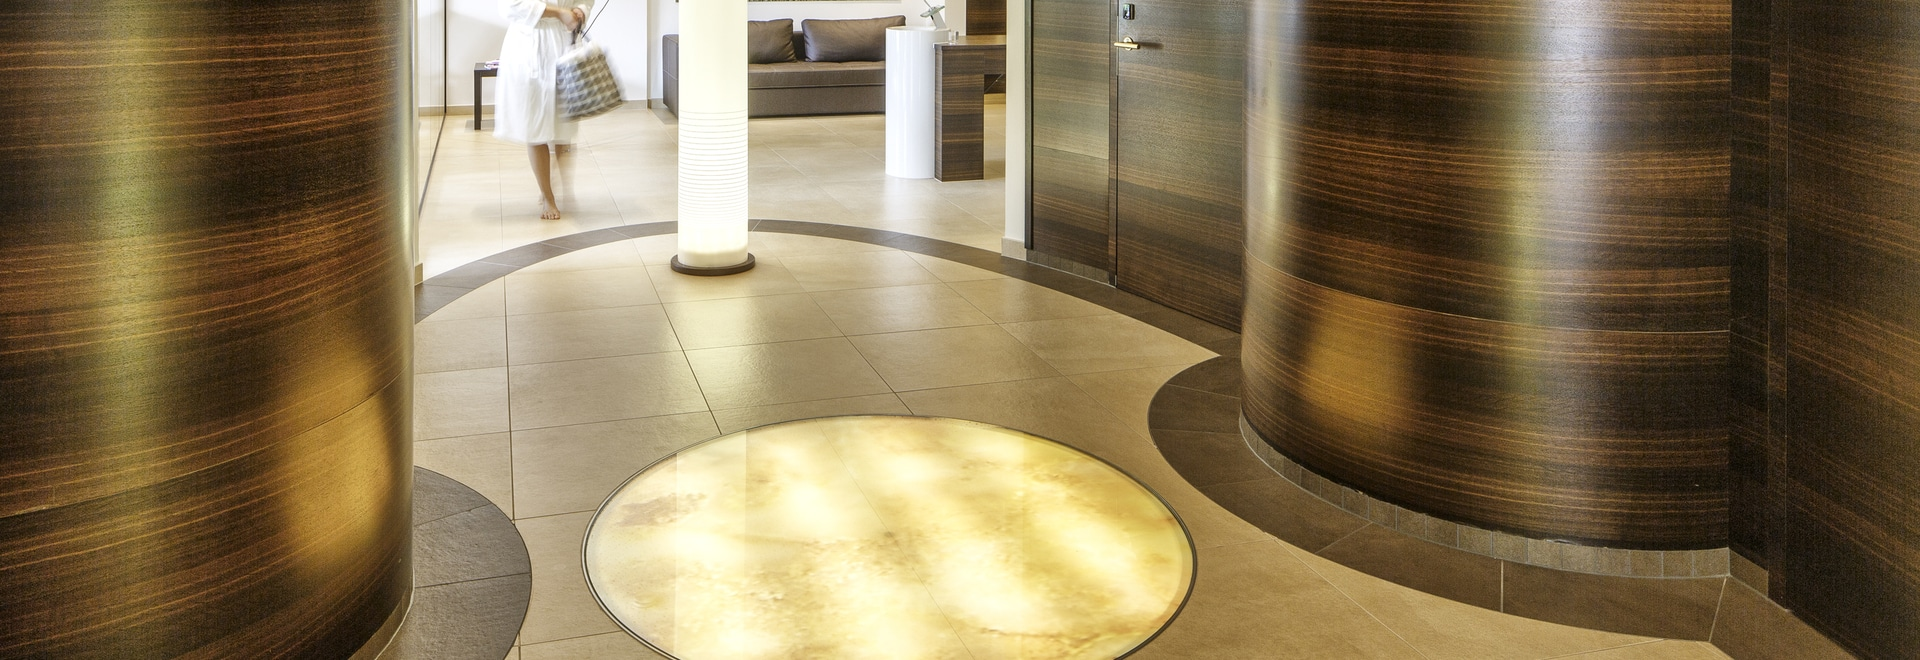 Ceramiche Keope collections chosen for the 4-star Belchen Hotel